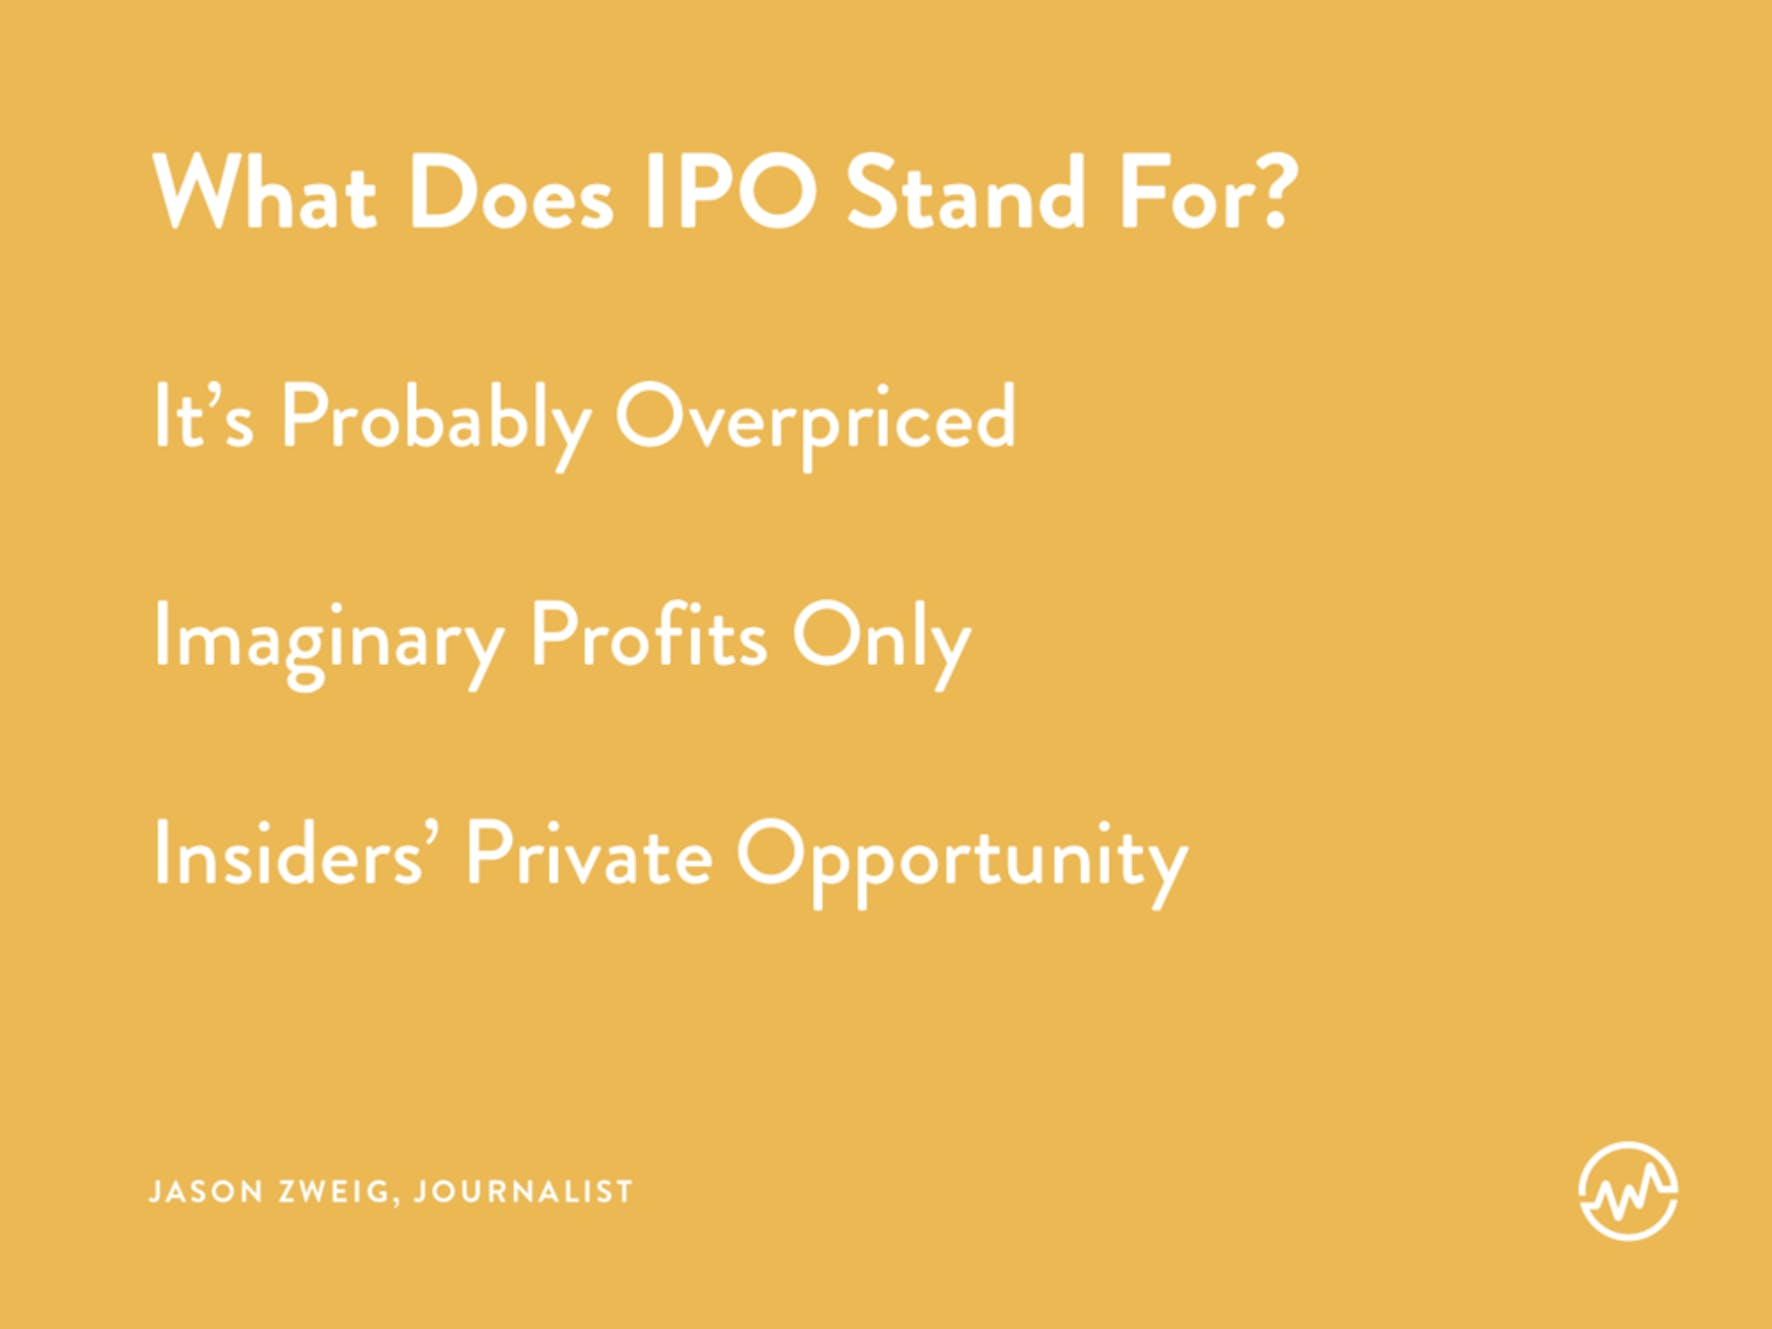 What does an IPO stand for?